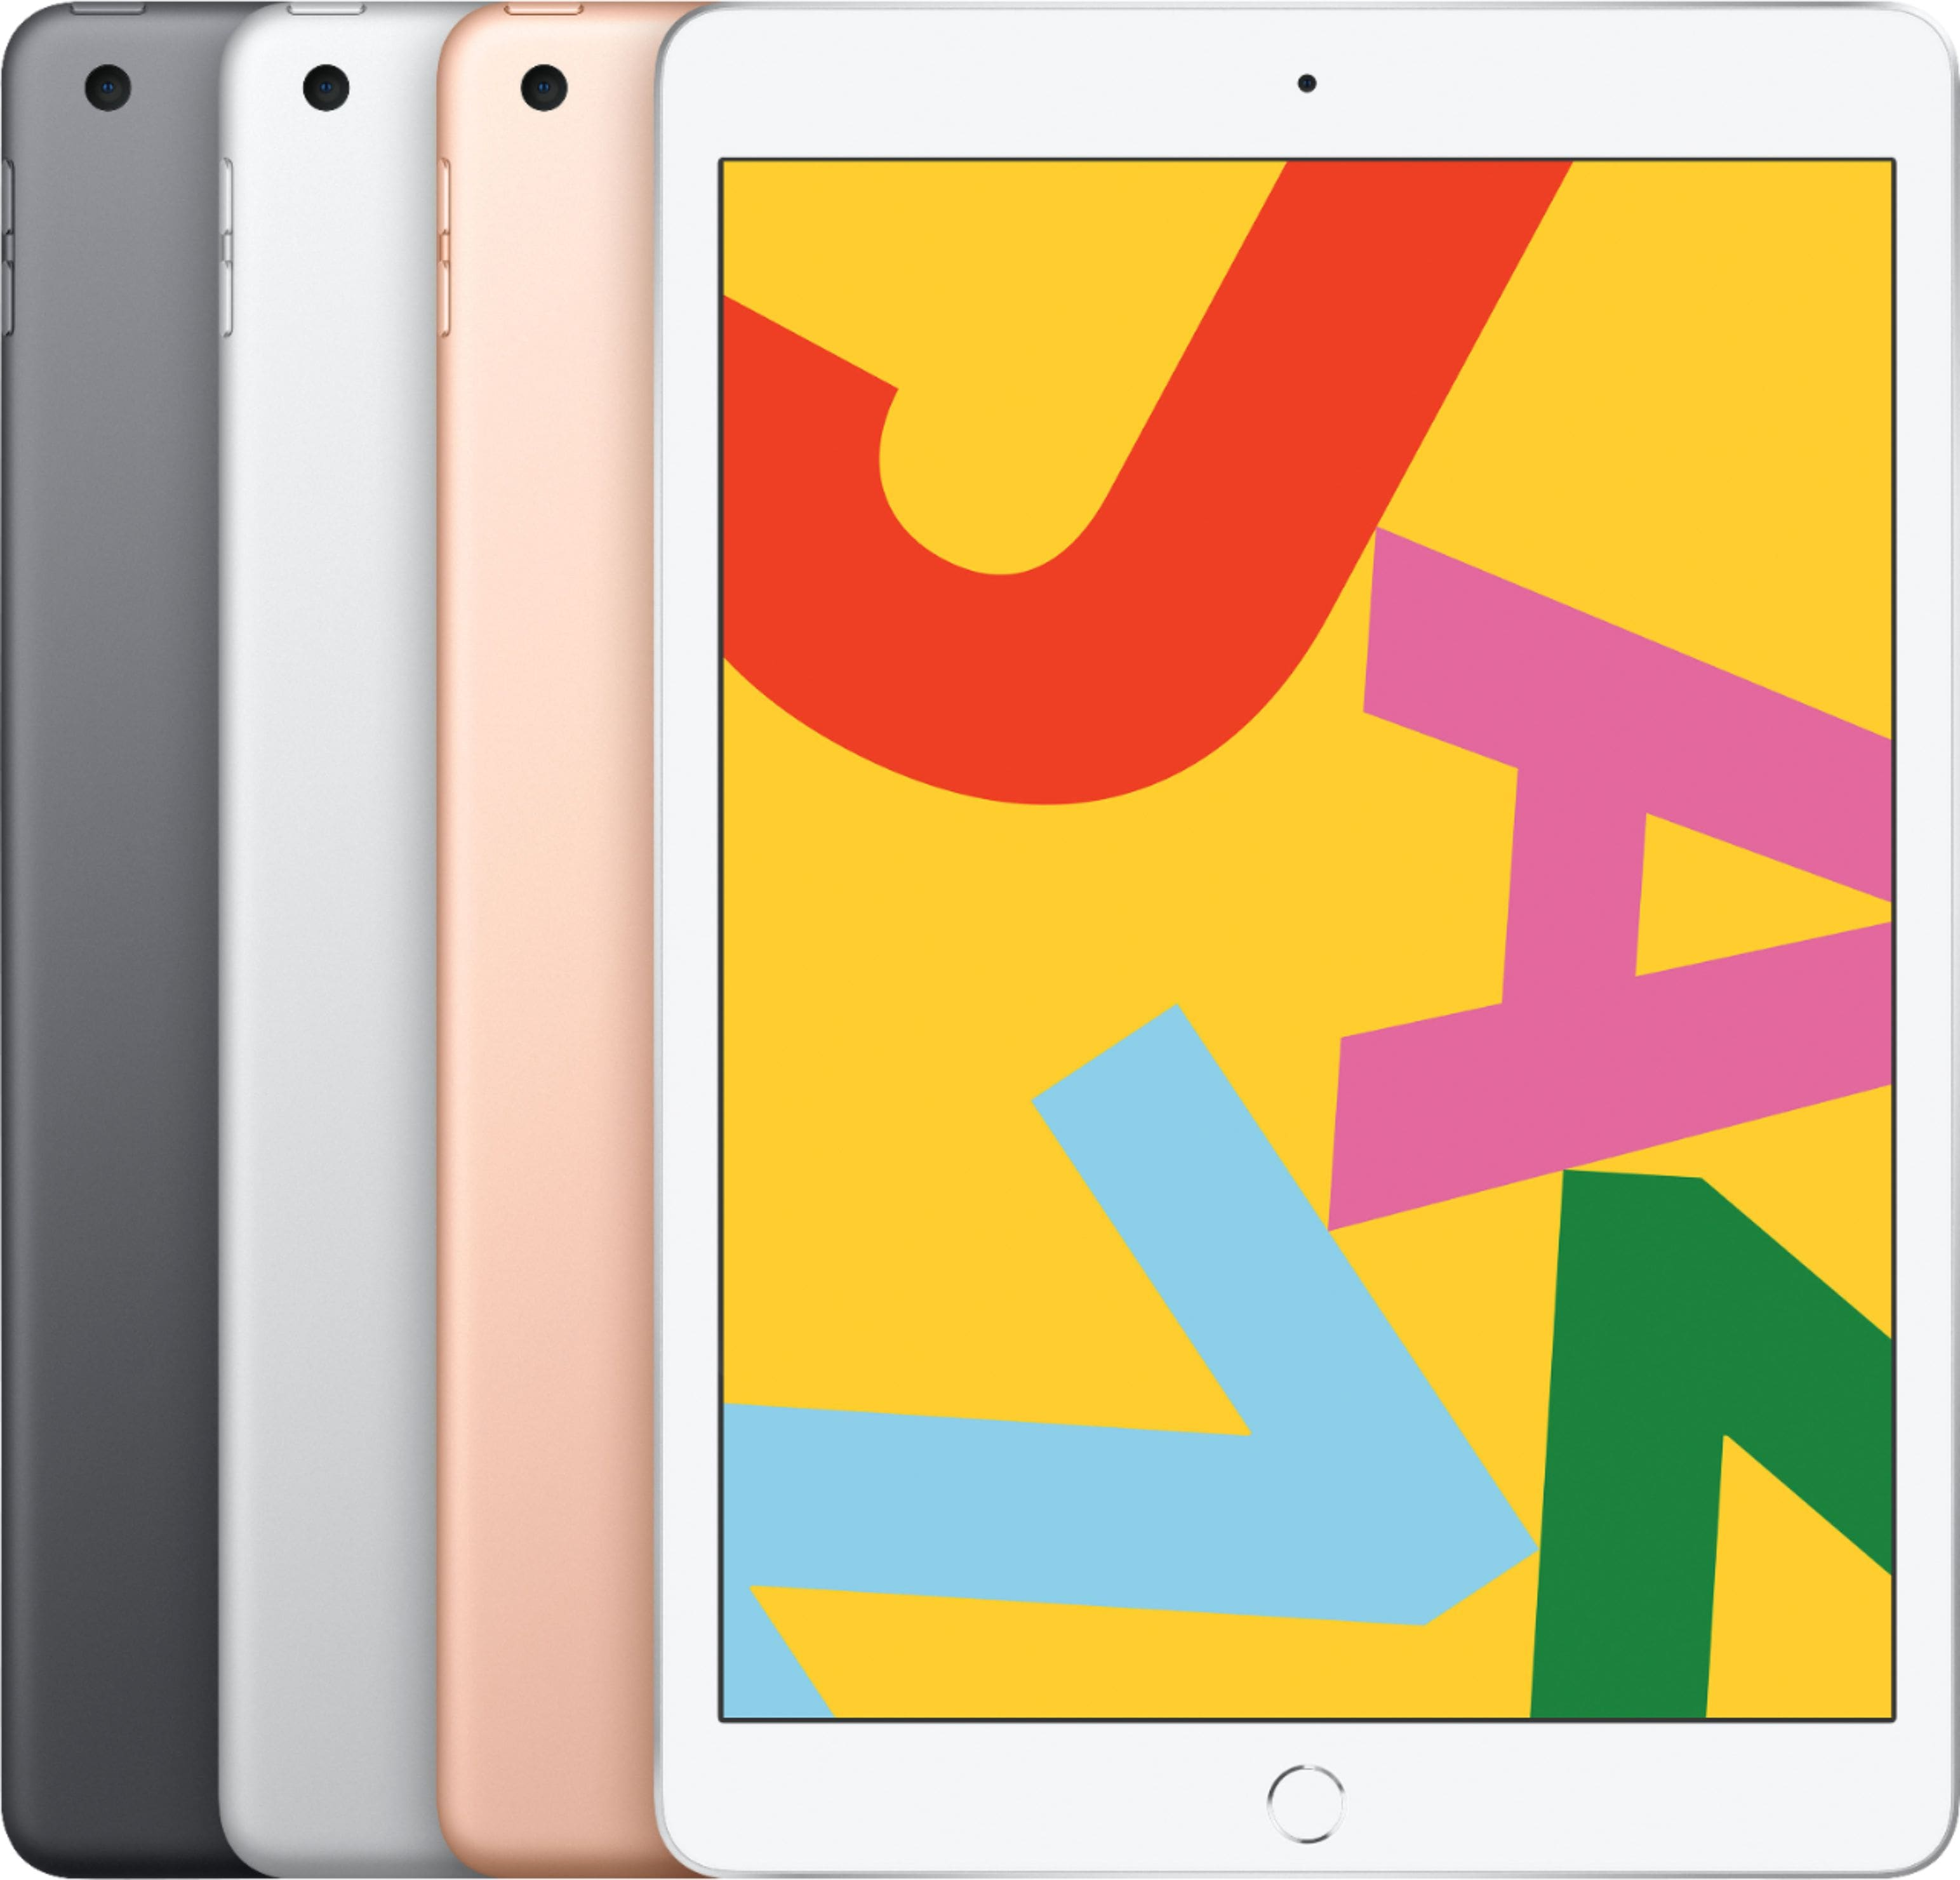 Apple - 10.2-inch iPad (Latest Model) with Wi-Fi - 32GB, 3 Colors $249.99